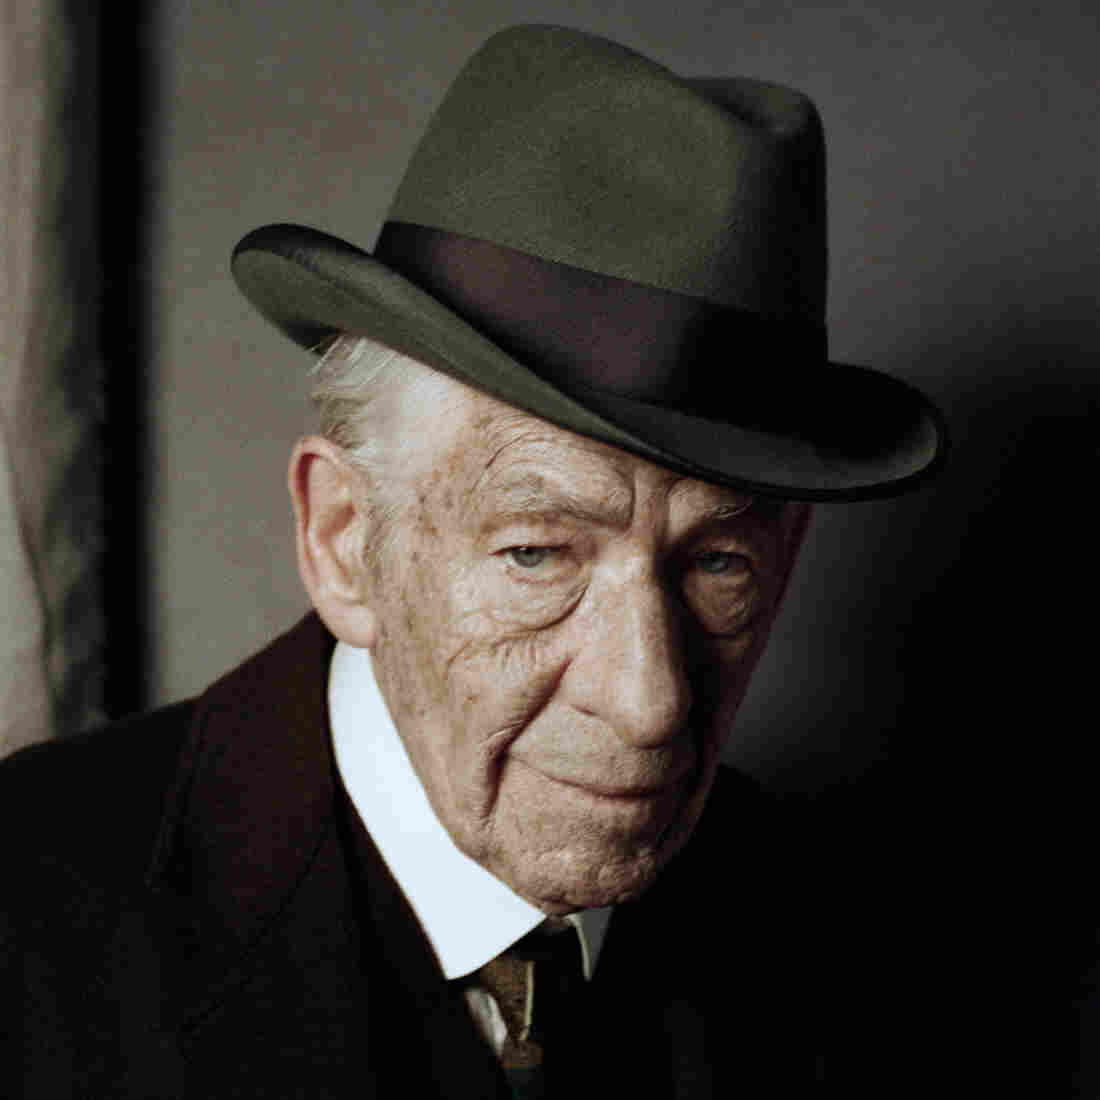 An Aging And Soulful 'Mr. Holmes' Puts A New Spin On Sherlock